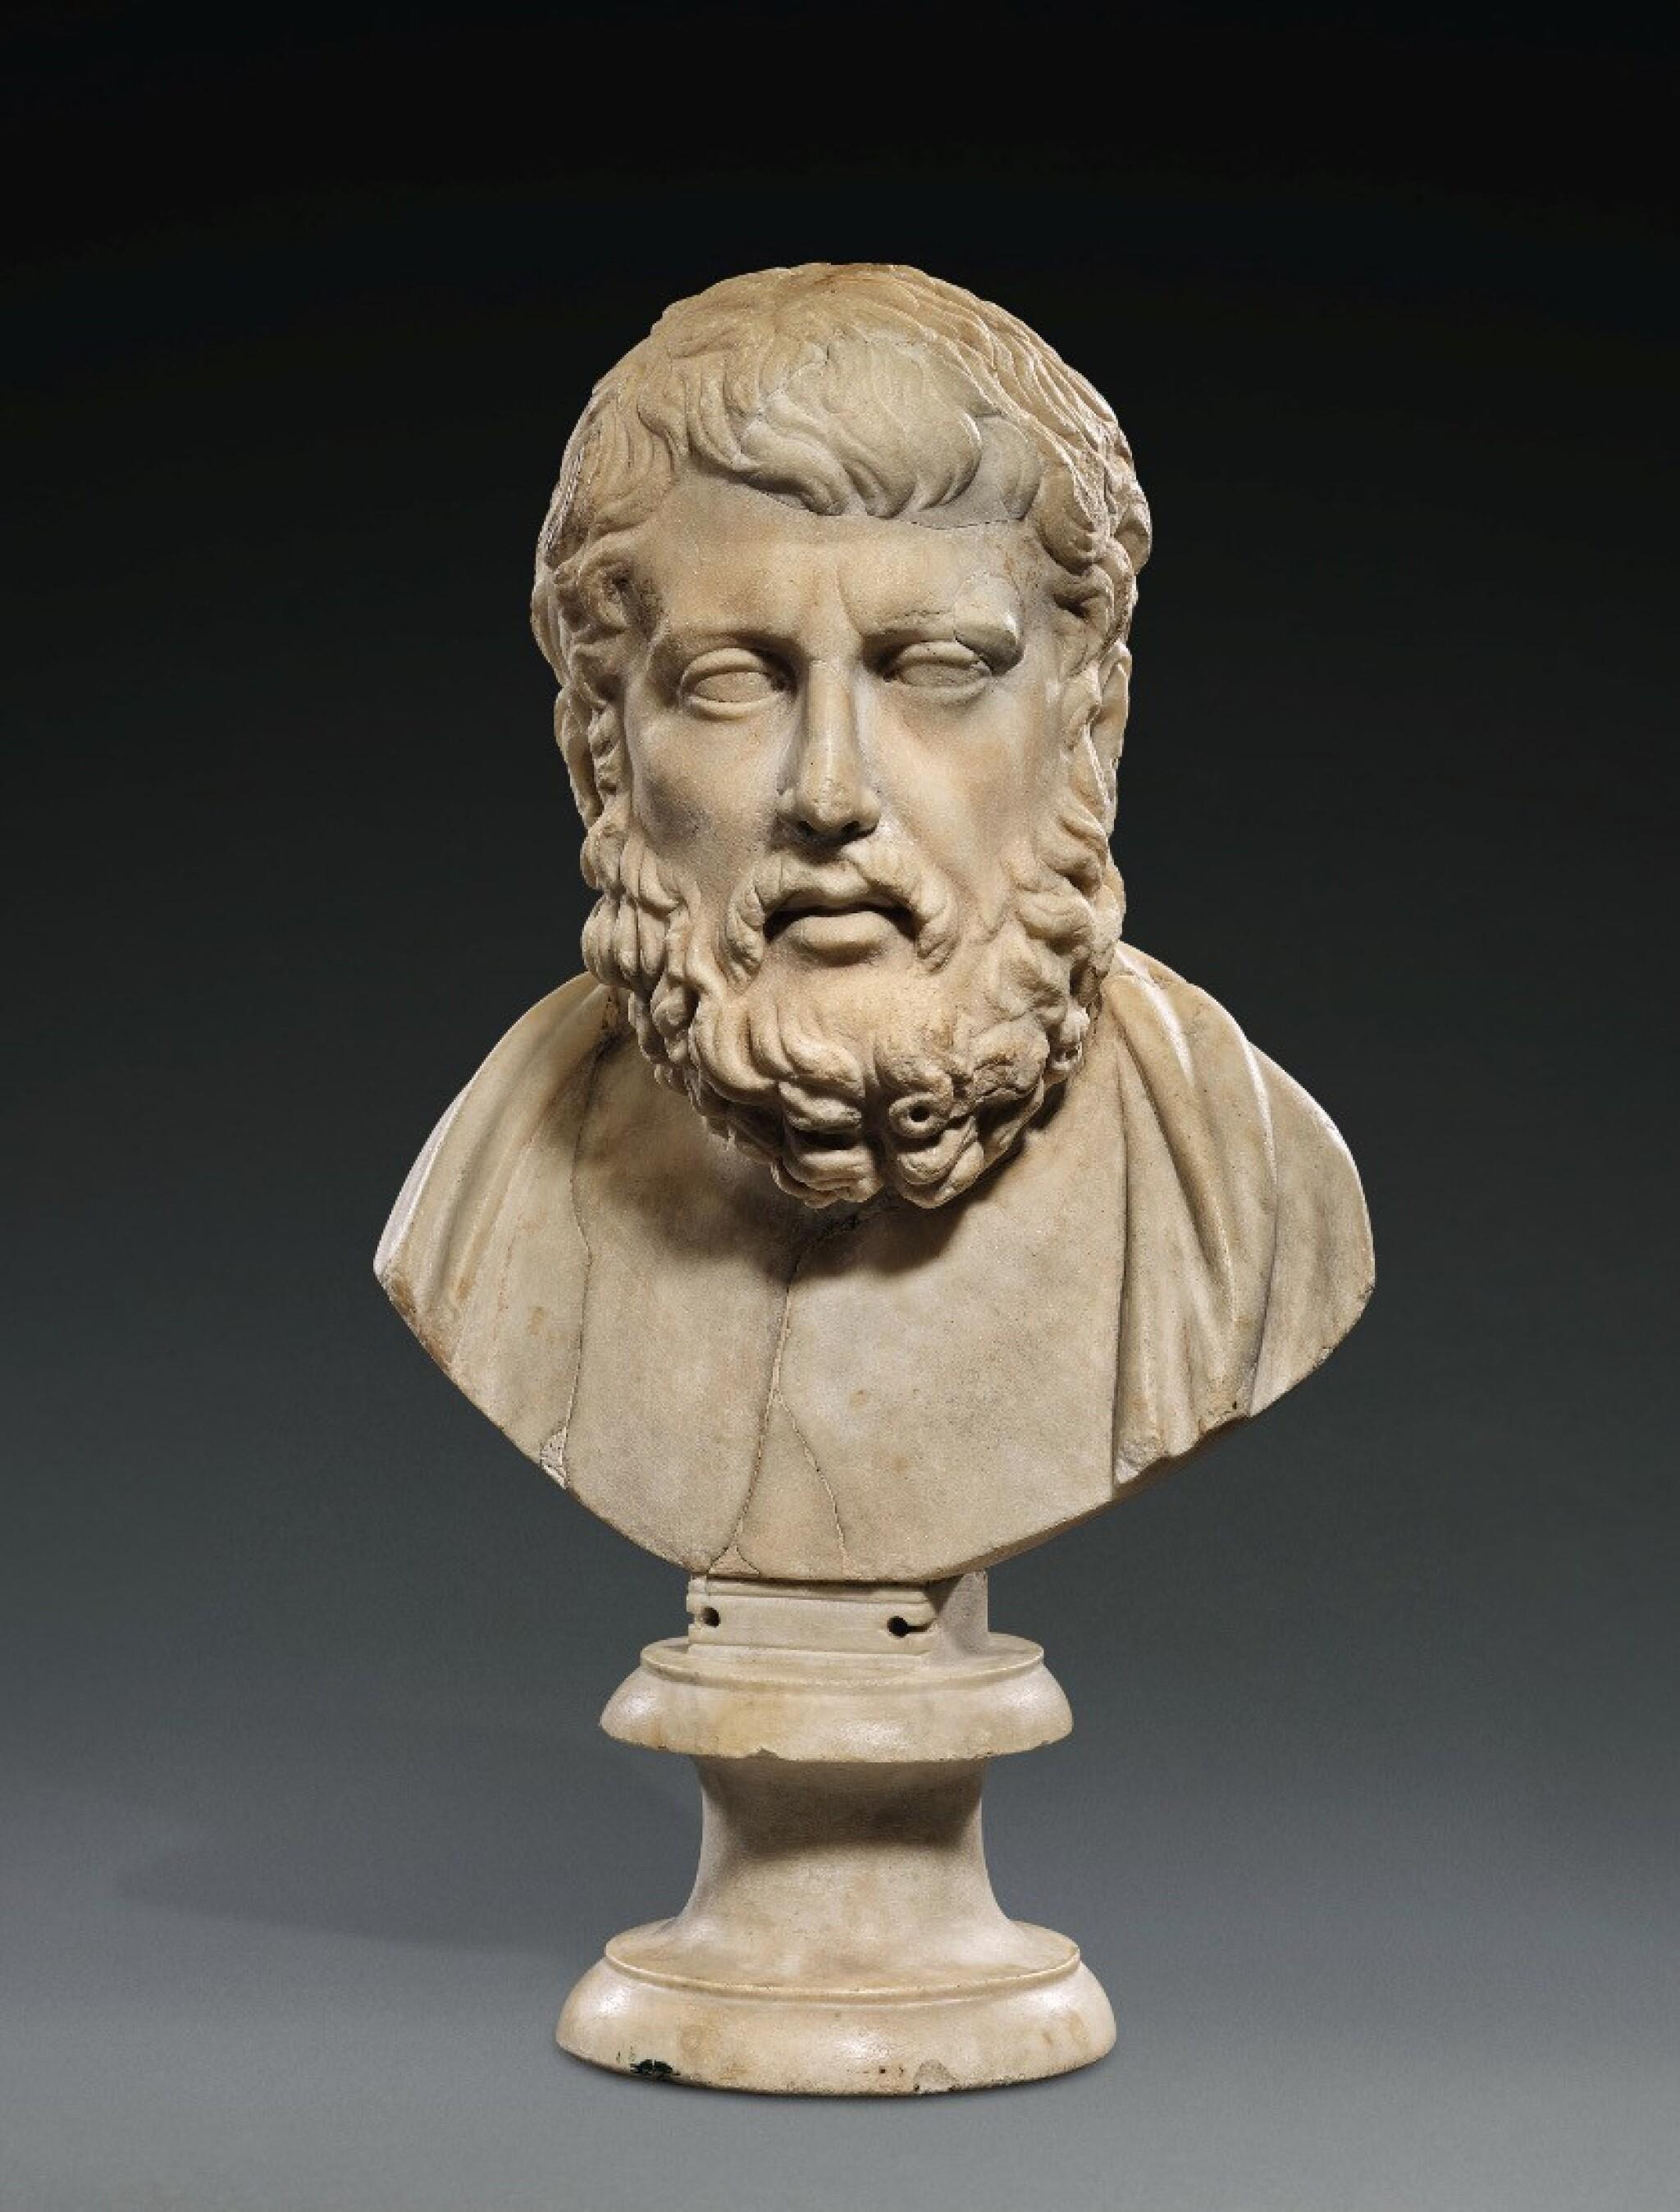 View 1 of Lot 91. A Roman Marble Portrait Bust of Hermarchos of Mytilene, circa 1st Century A.D..